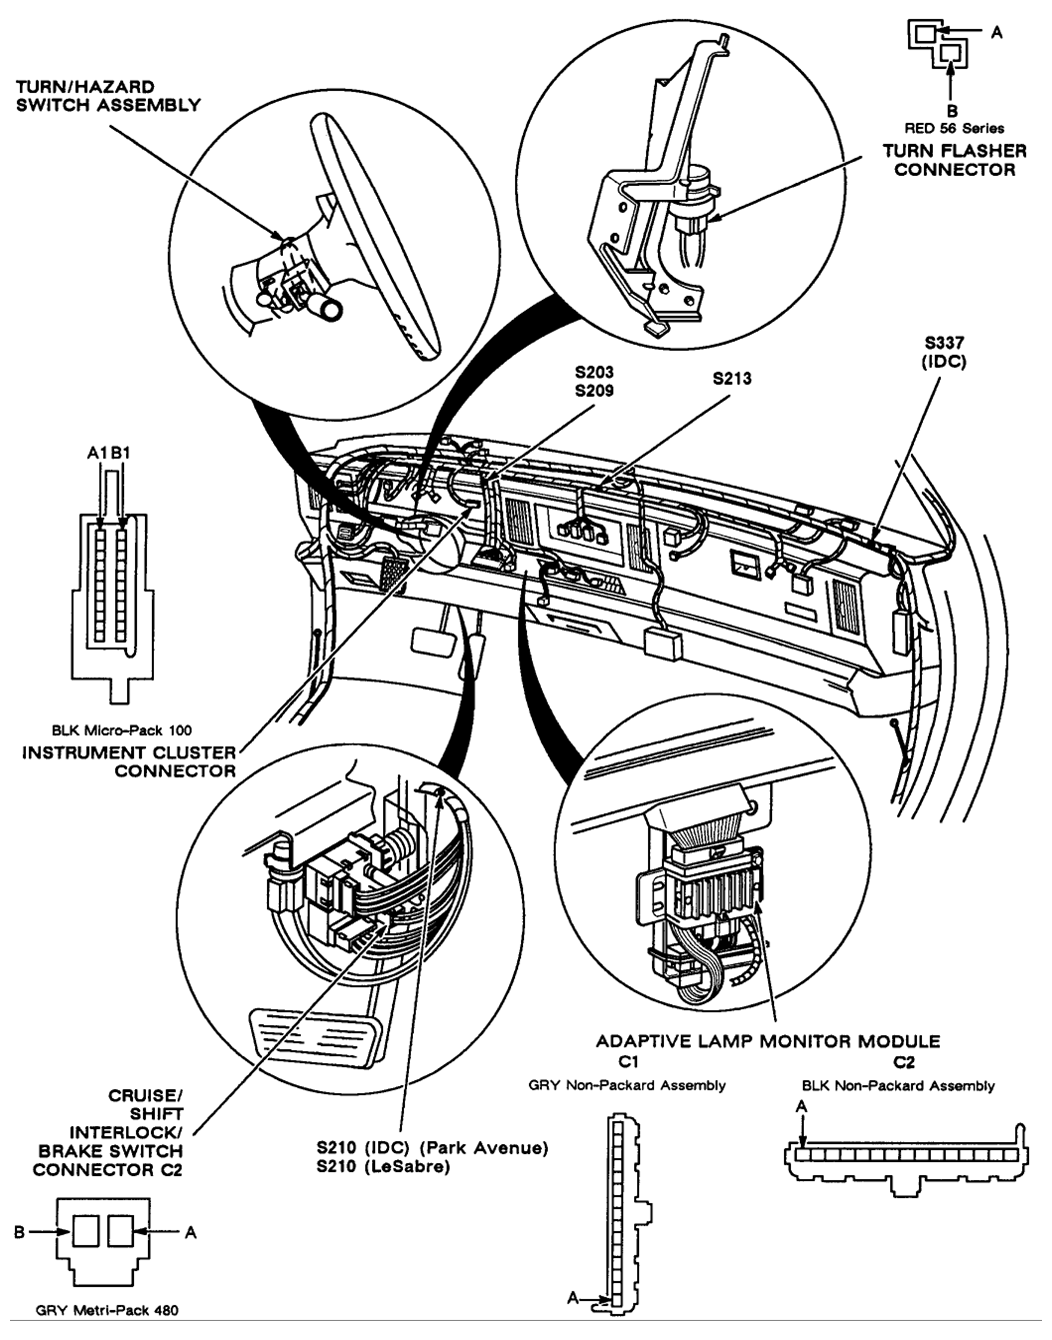 1984 corvette fuse box location